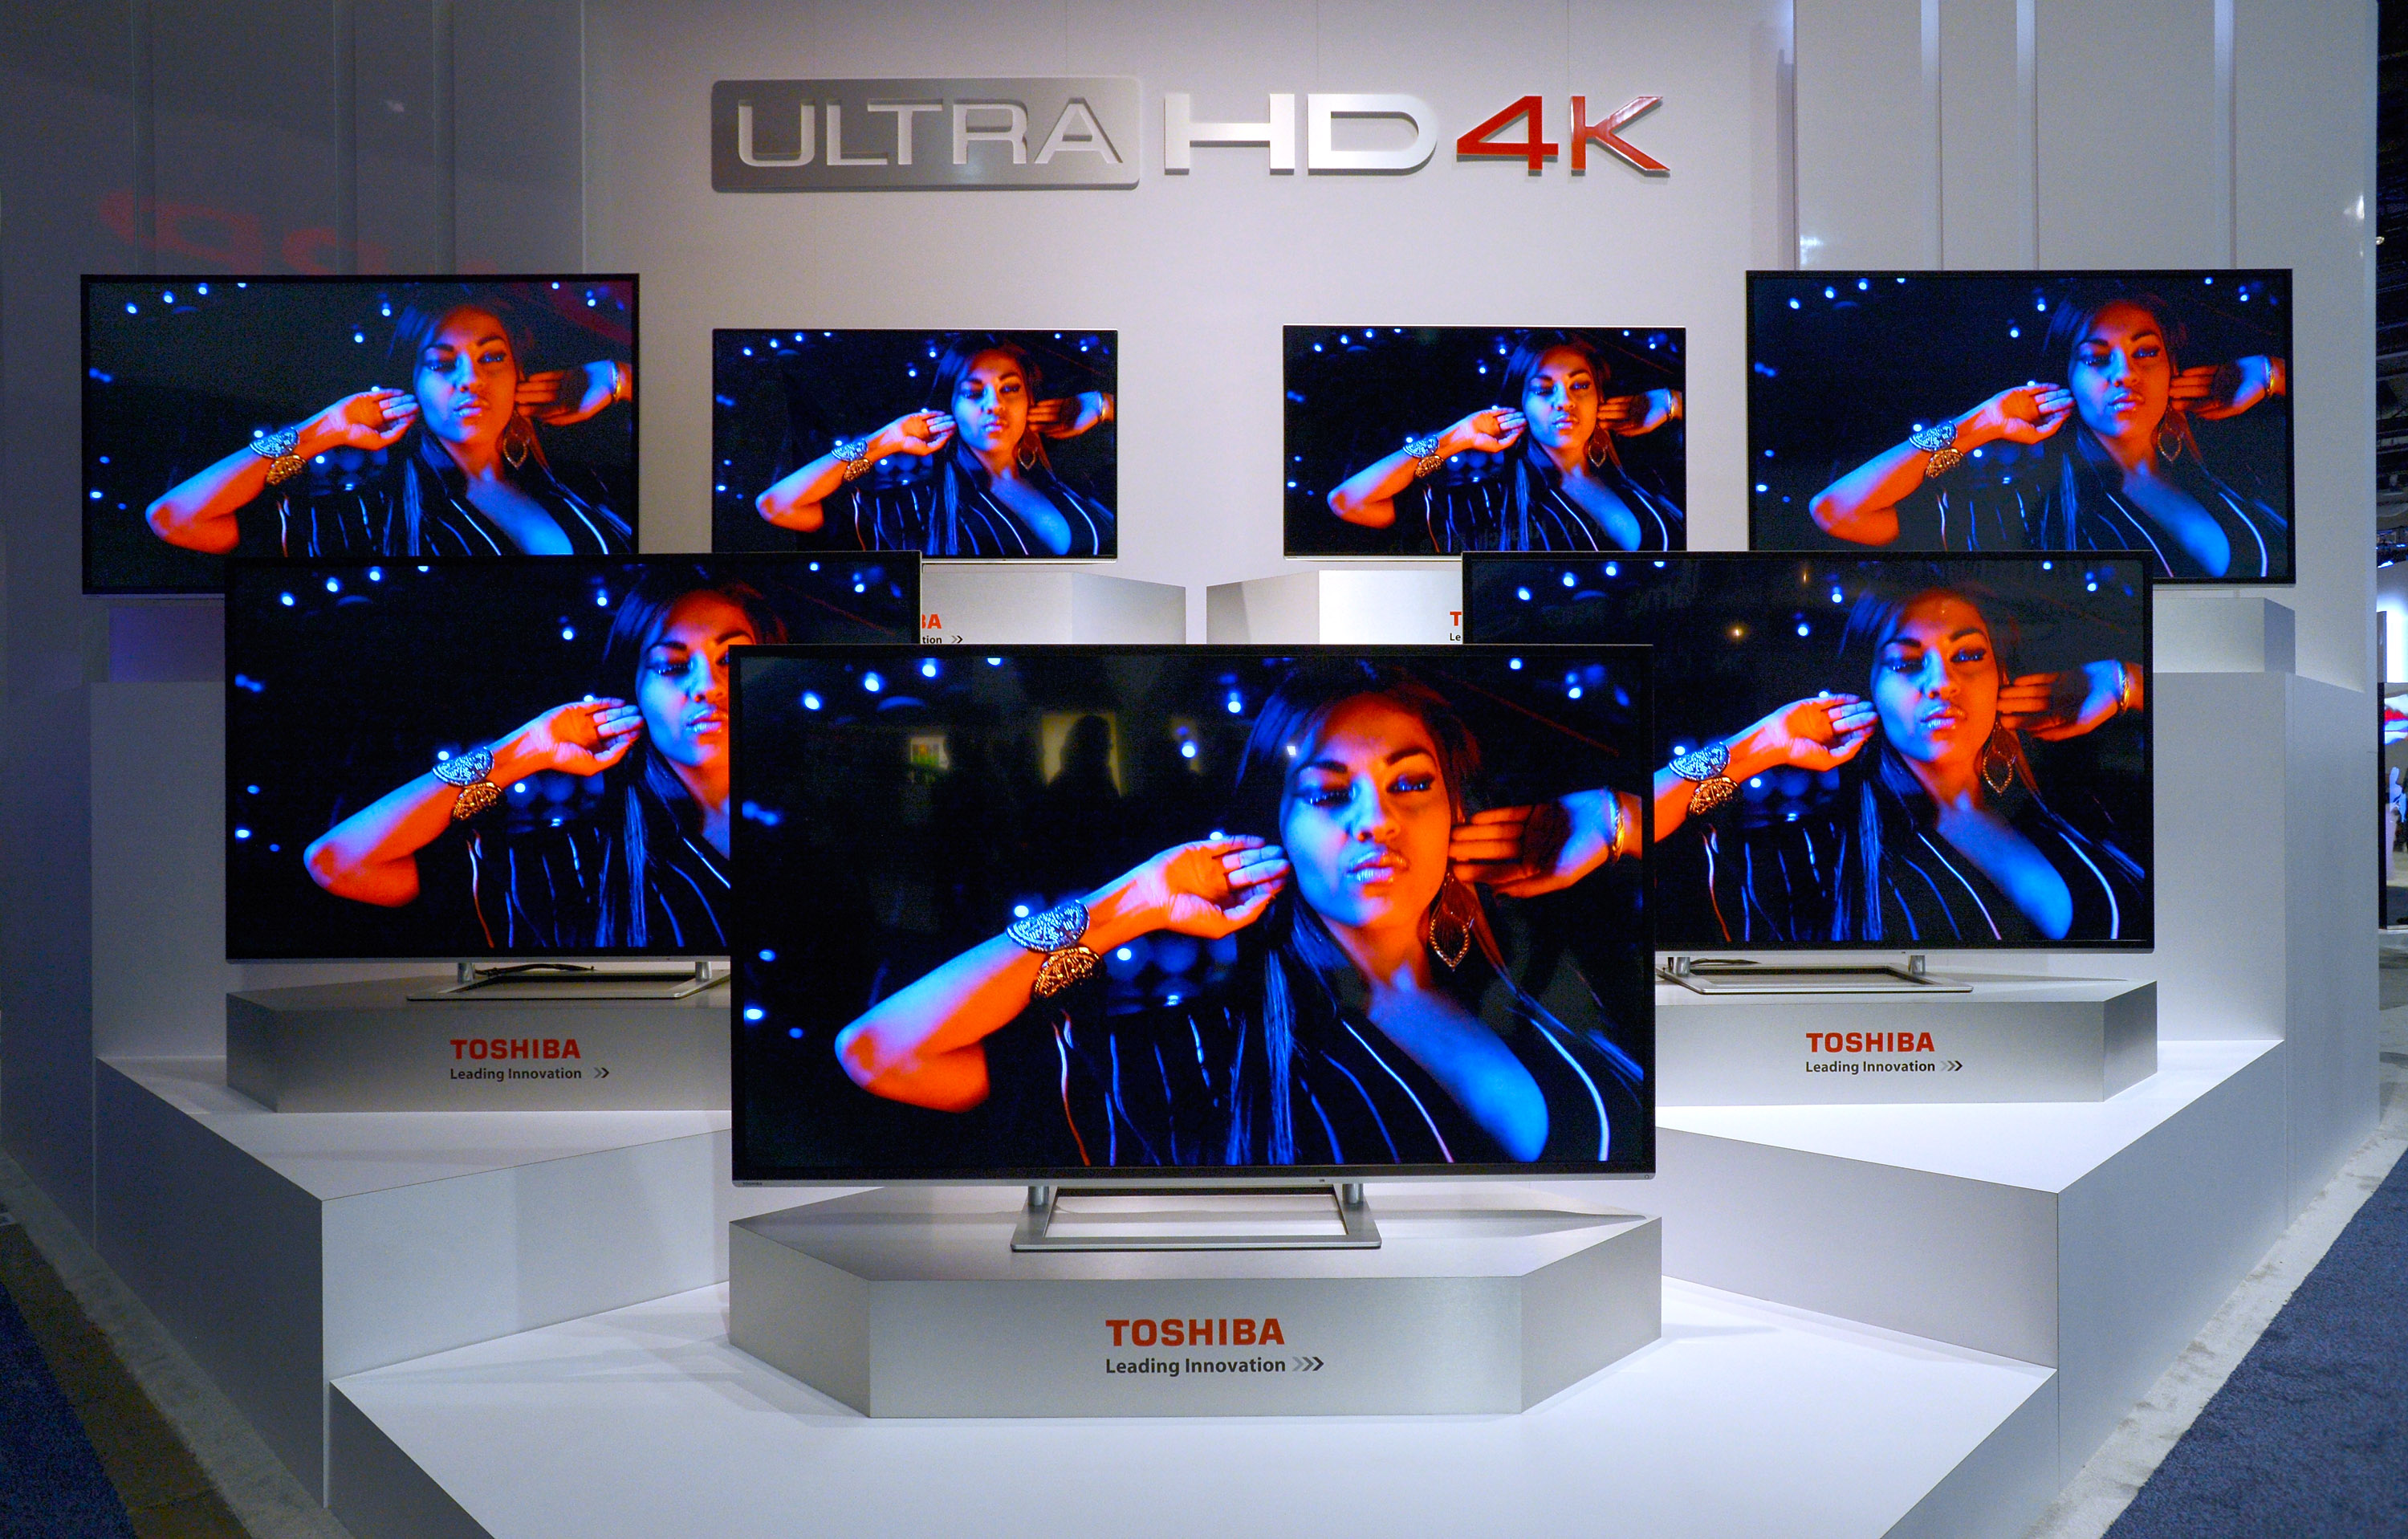 Toshiba Ultra HD 4K televisions are on display at the Toshiba booth at the 2014 International CES at the Las Vegas Convention Center on January 7, 2014 in Las Vegas, Nevada.